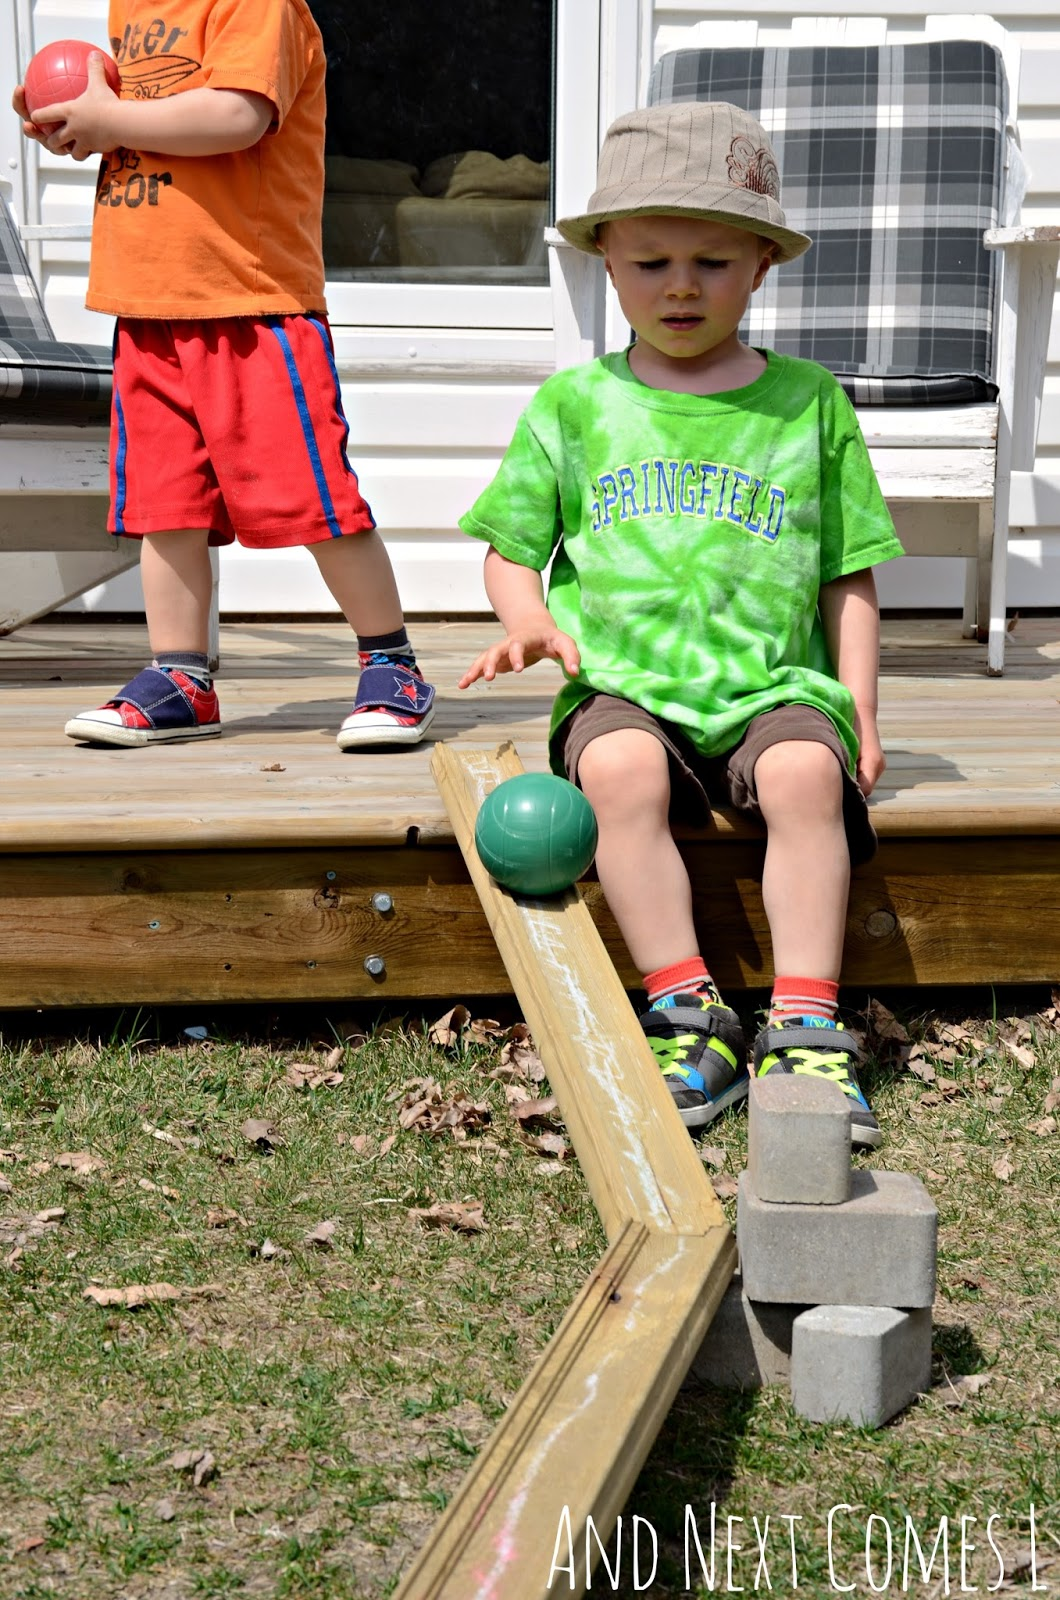 J playing with DIY outdoor ball run made from loose parts in the backyard from And Next Comes L